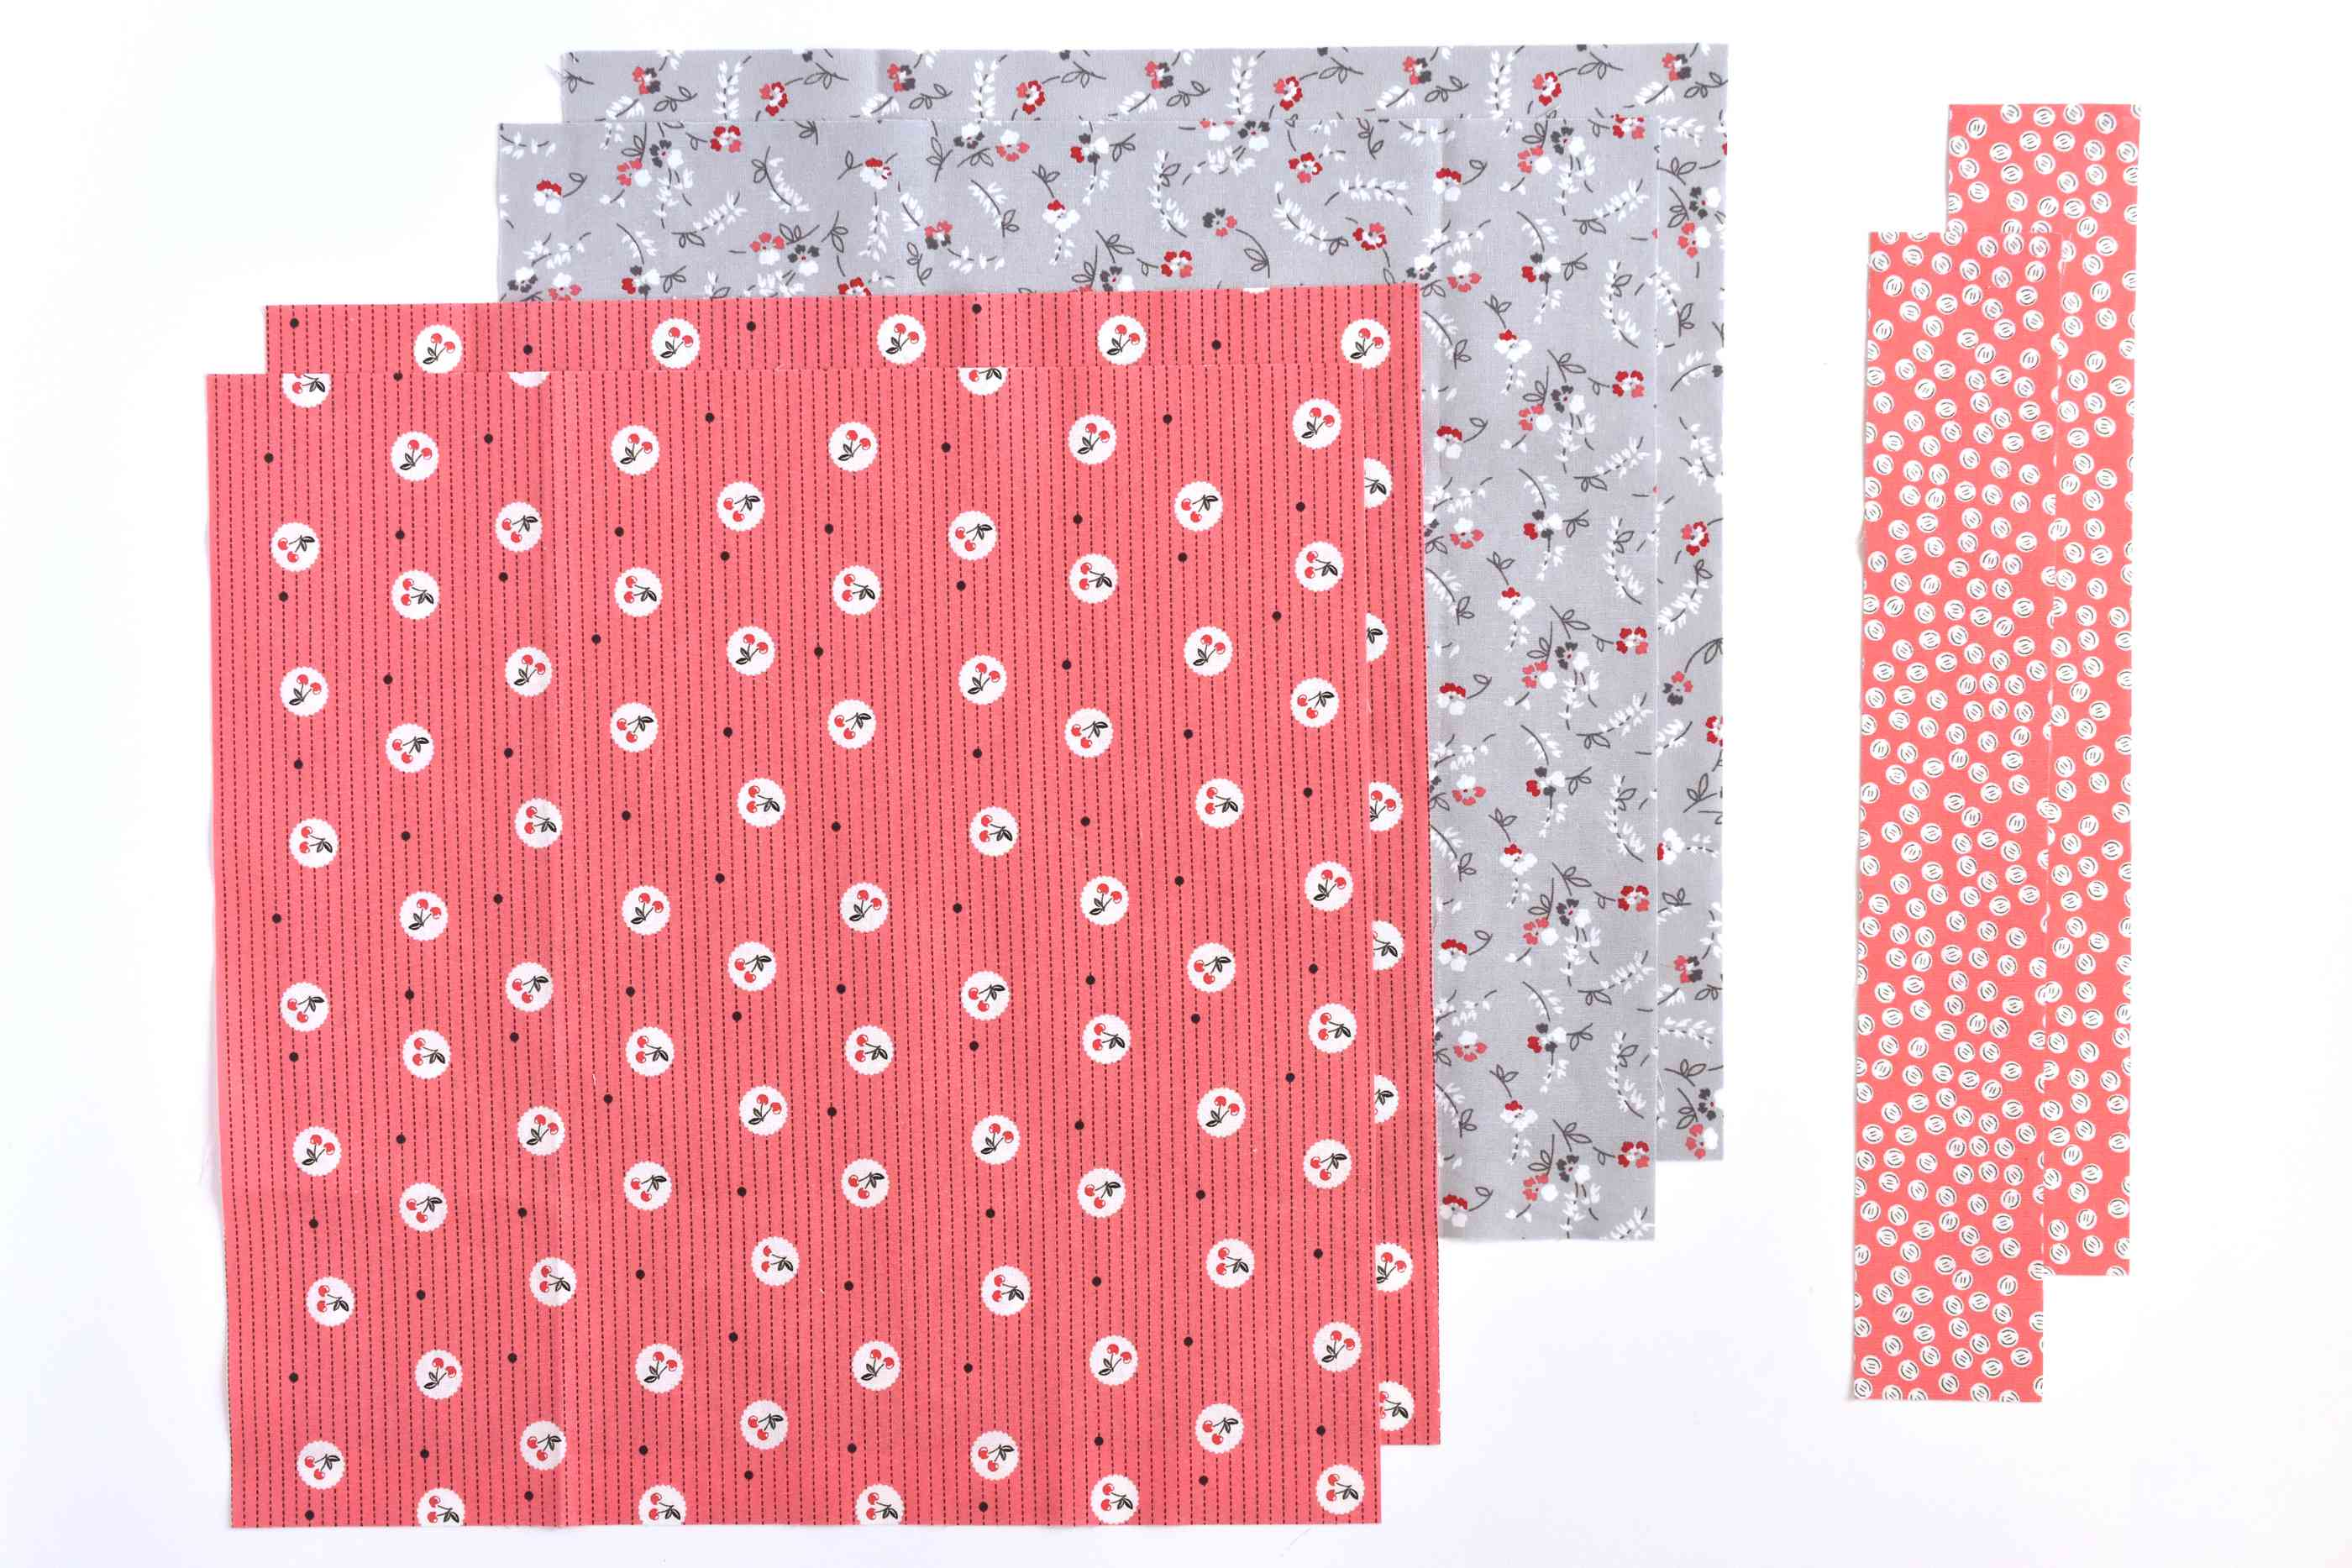 Different sizes of different patterned fabrics